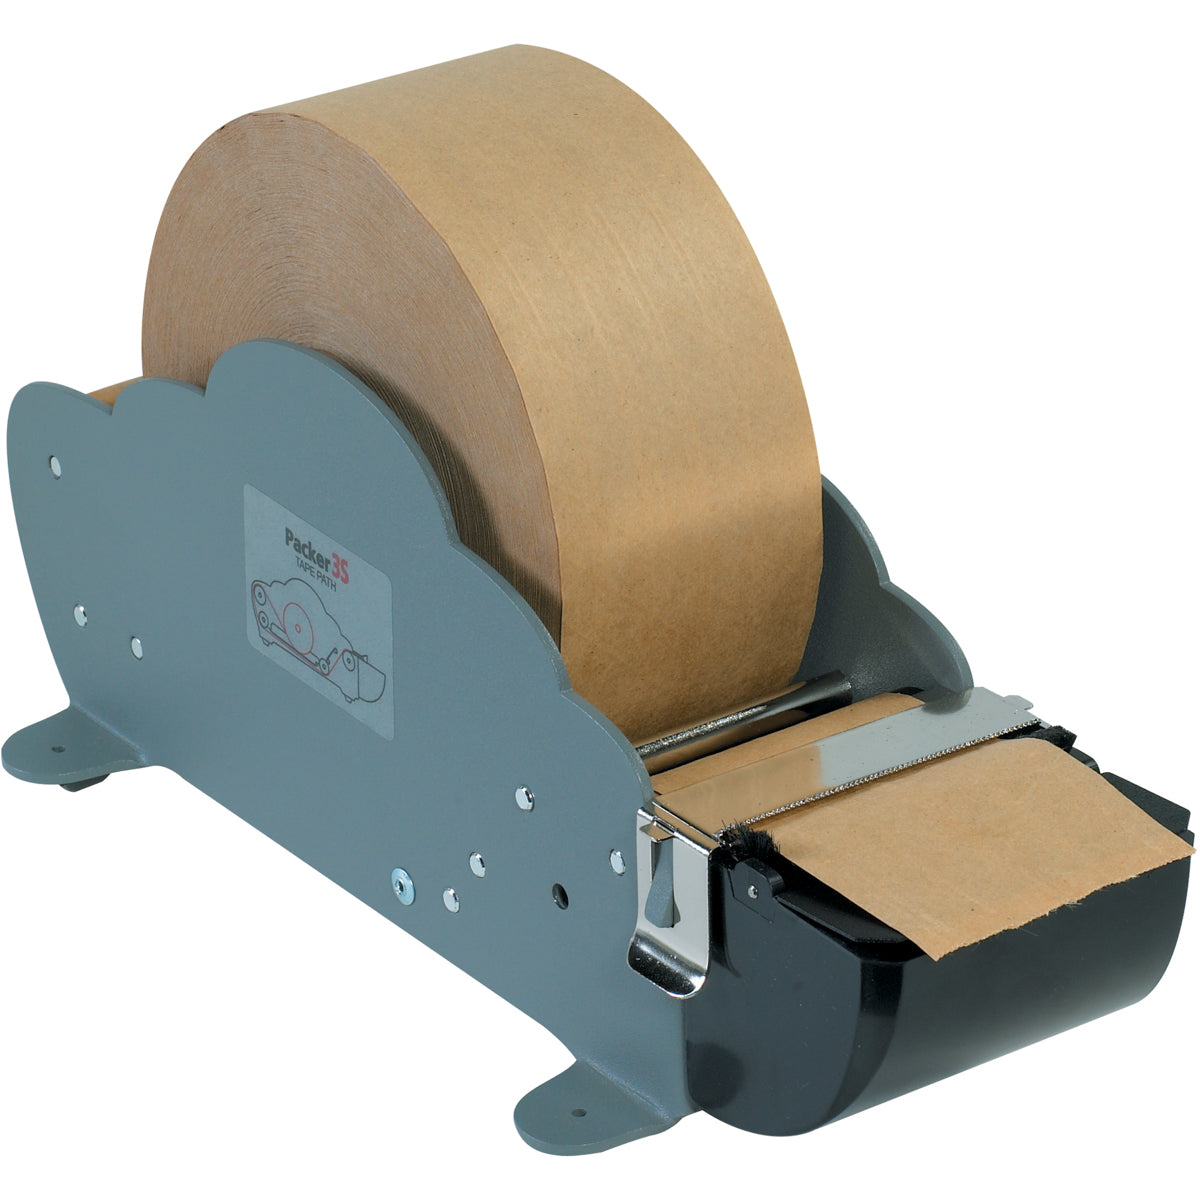 PHOENIX GUMMED TAPE DISPENSER REPLACEMENT UPPER TAPE PLATE  WE HAVE ALL PARTS